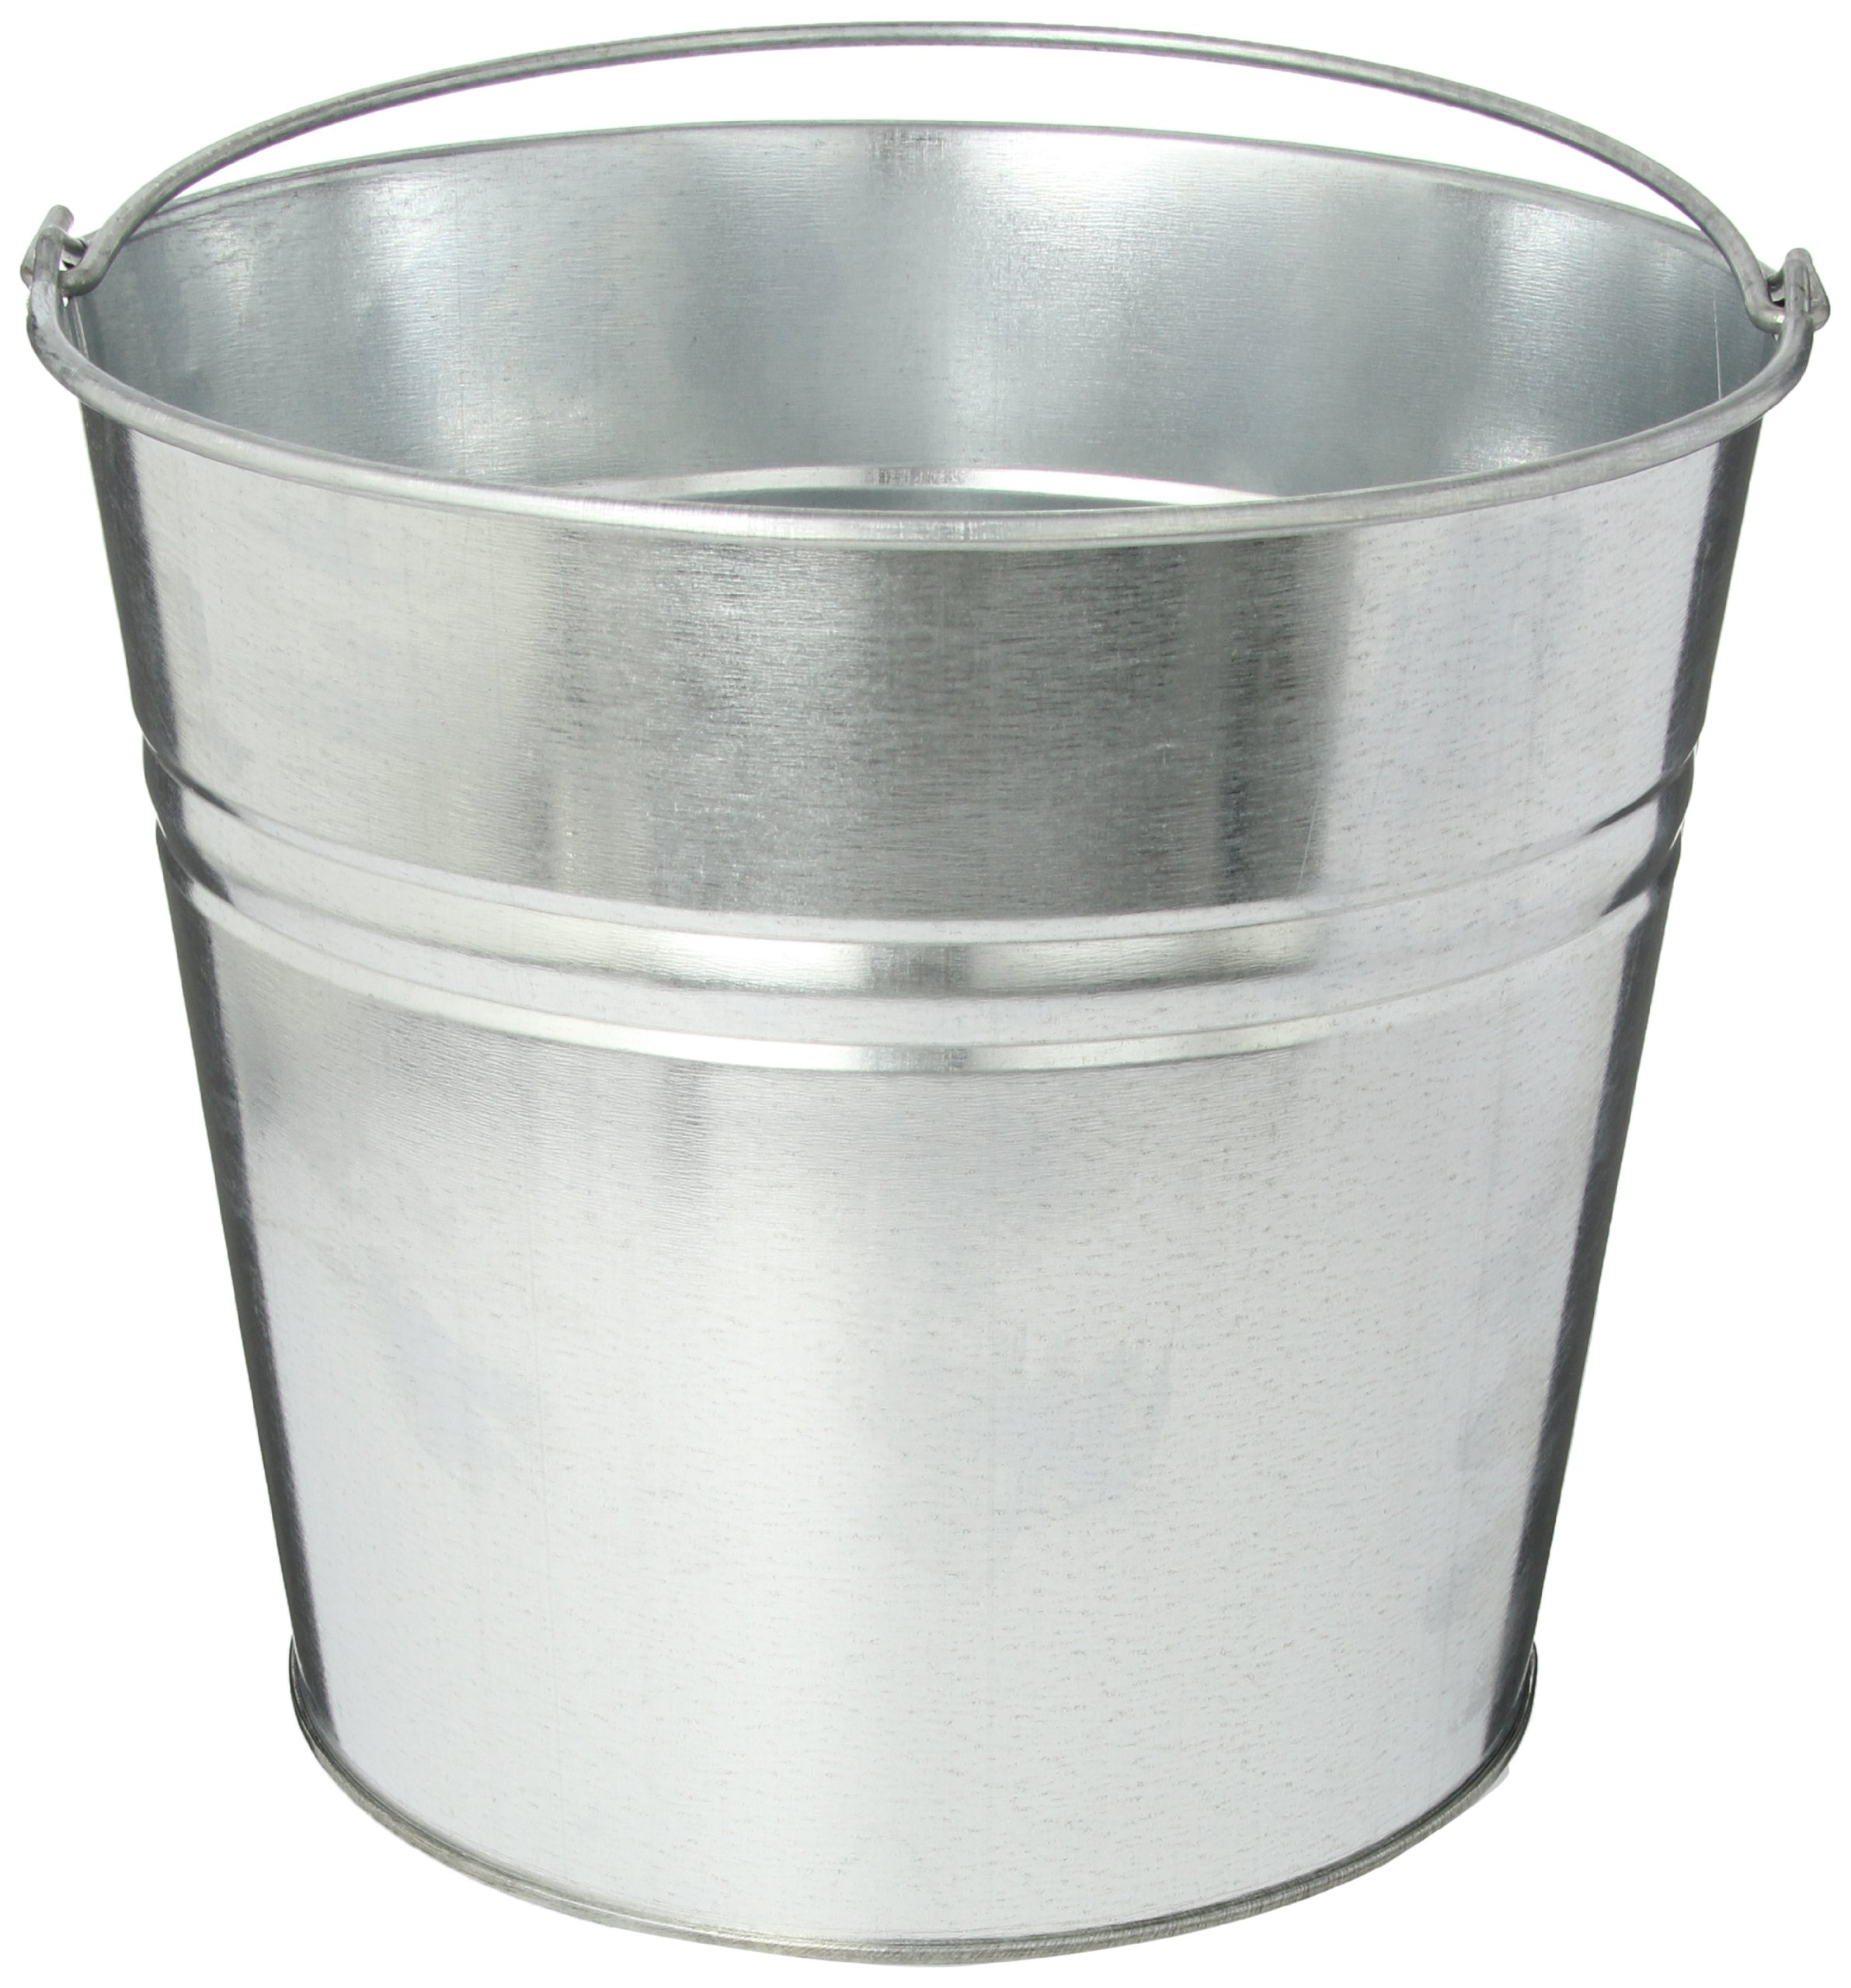 Impact 414 24 Gauge Steel Galvanized Utility Pail, 14 qt Capacity, 11-1/8'' Height (Case of 6)